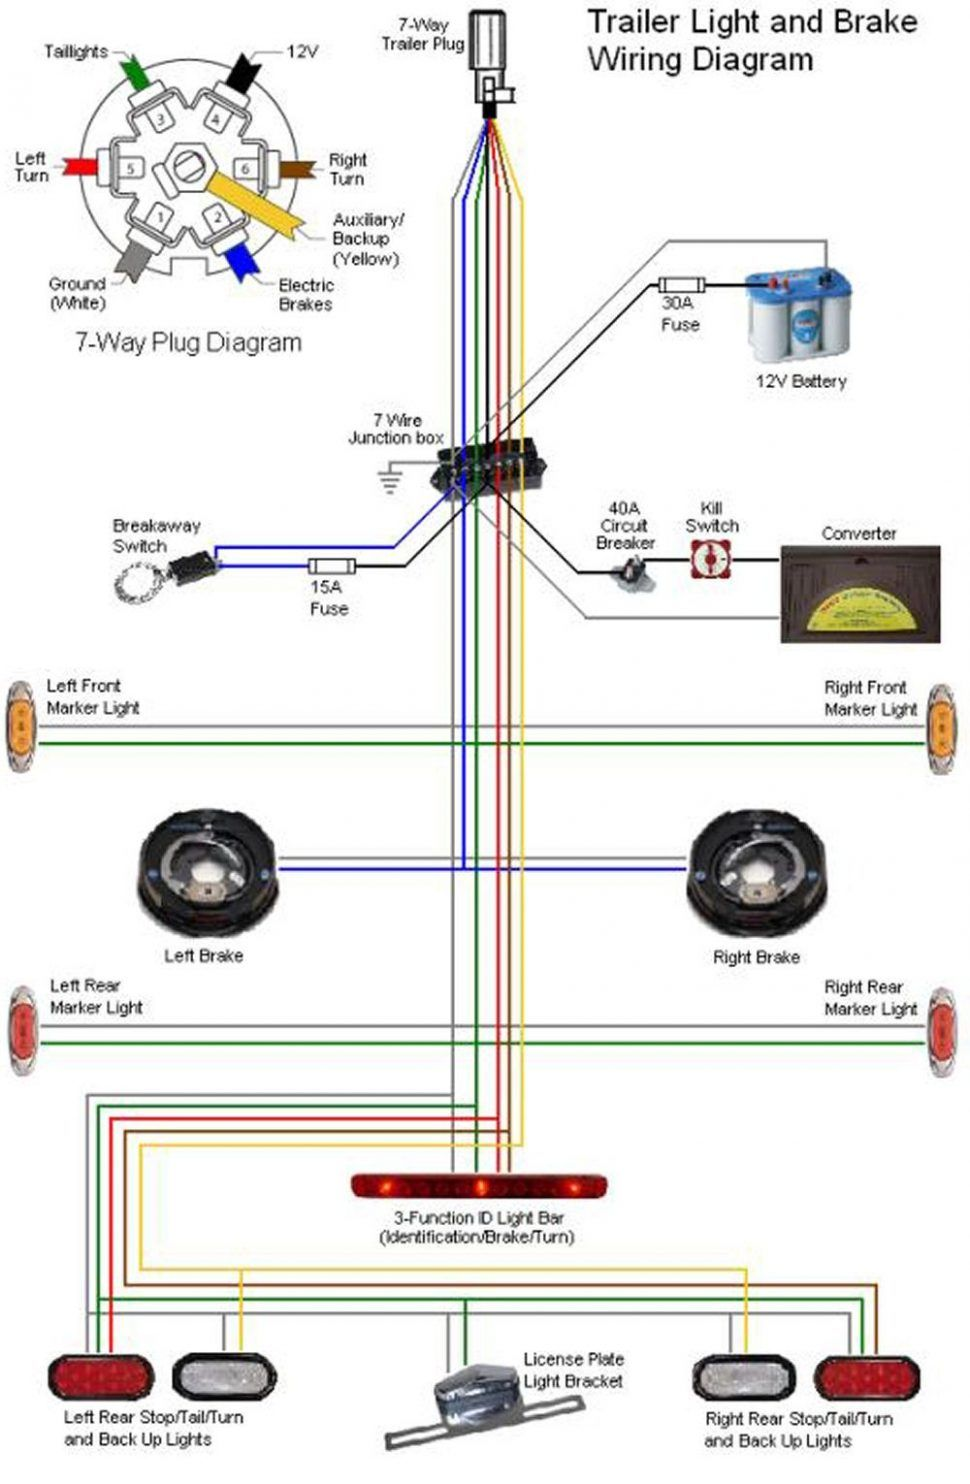 Seven Pin Trailer Wiring Diagram Wiring Diagrams Gallery 7-Wire Trailer Wiring  Diagram 7 Way Trailer Wiring Junction Box With Diagram